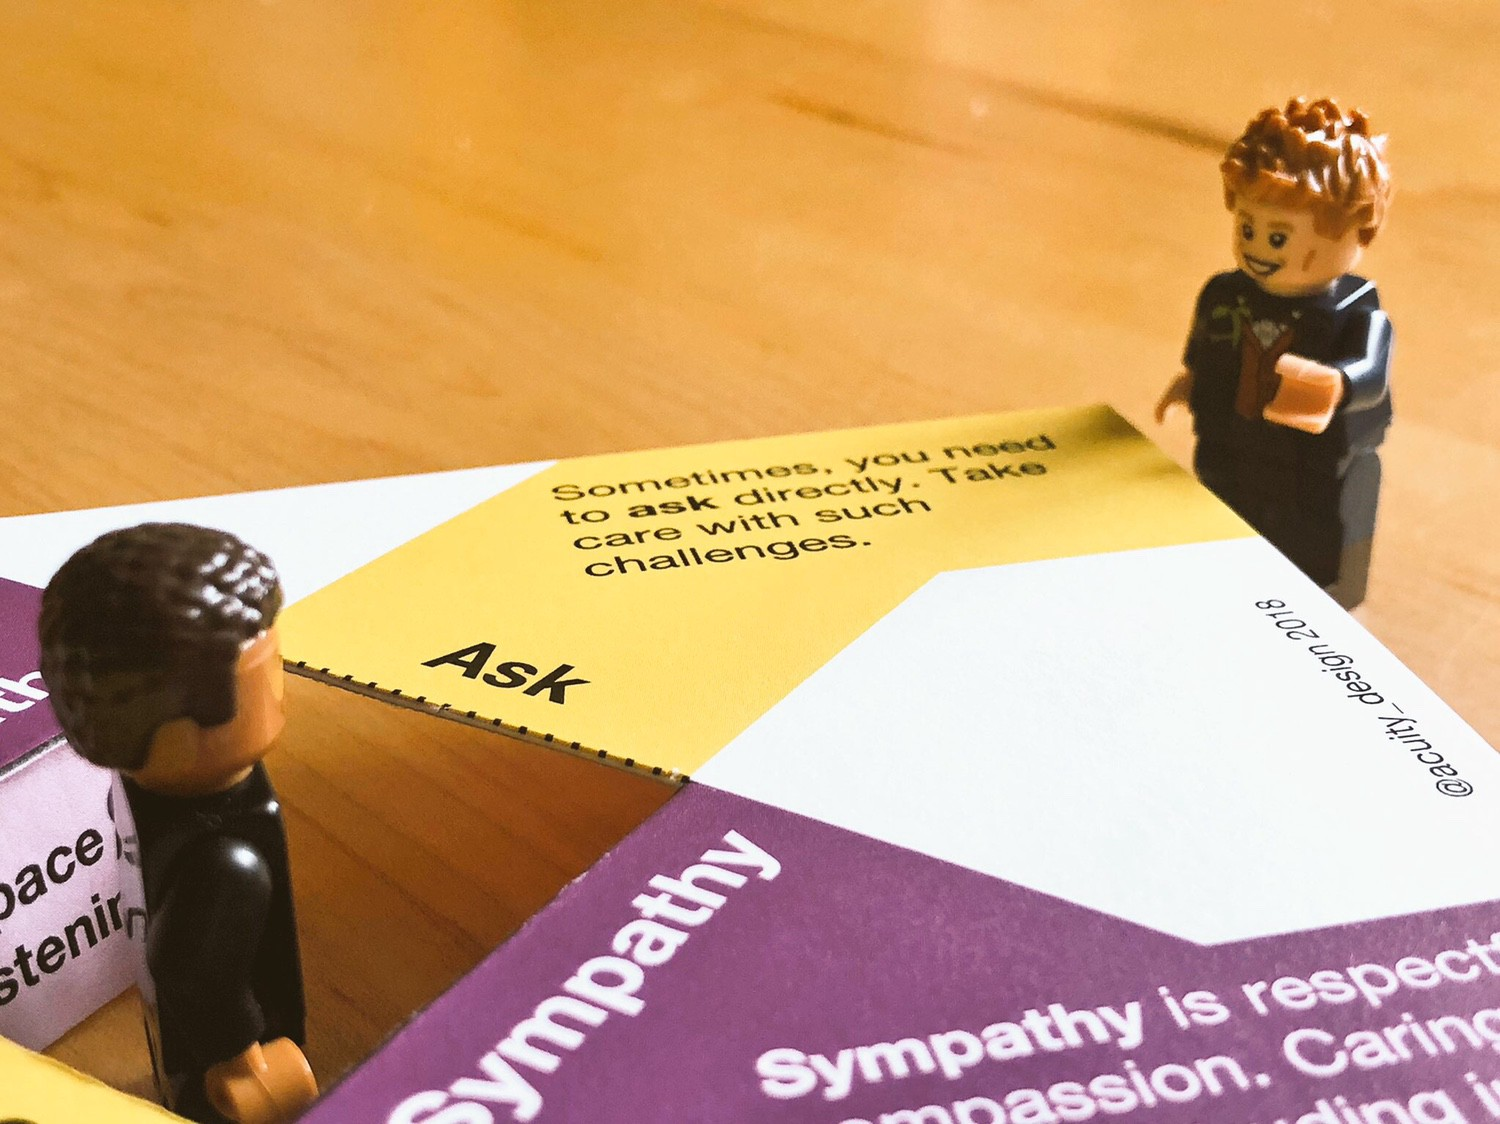 At another corner, the minifig points at text about Asking